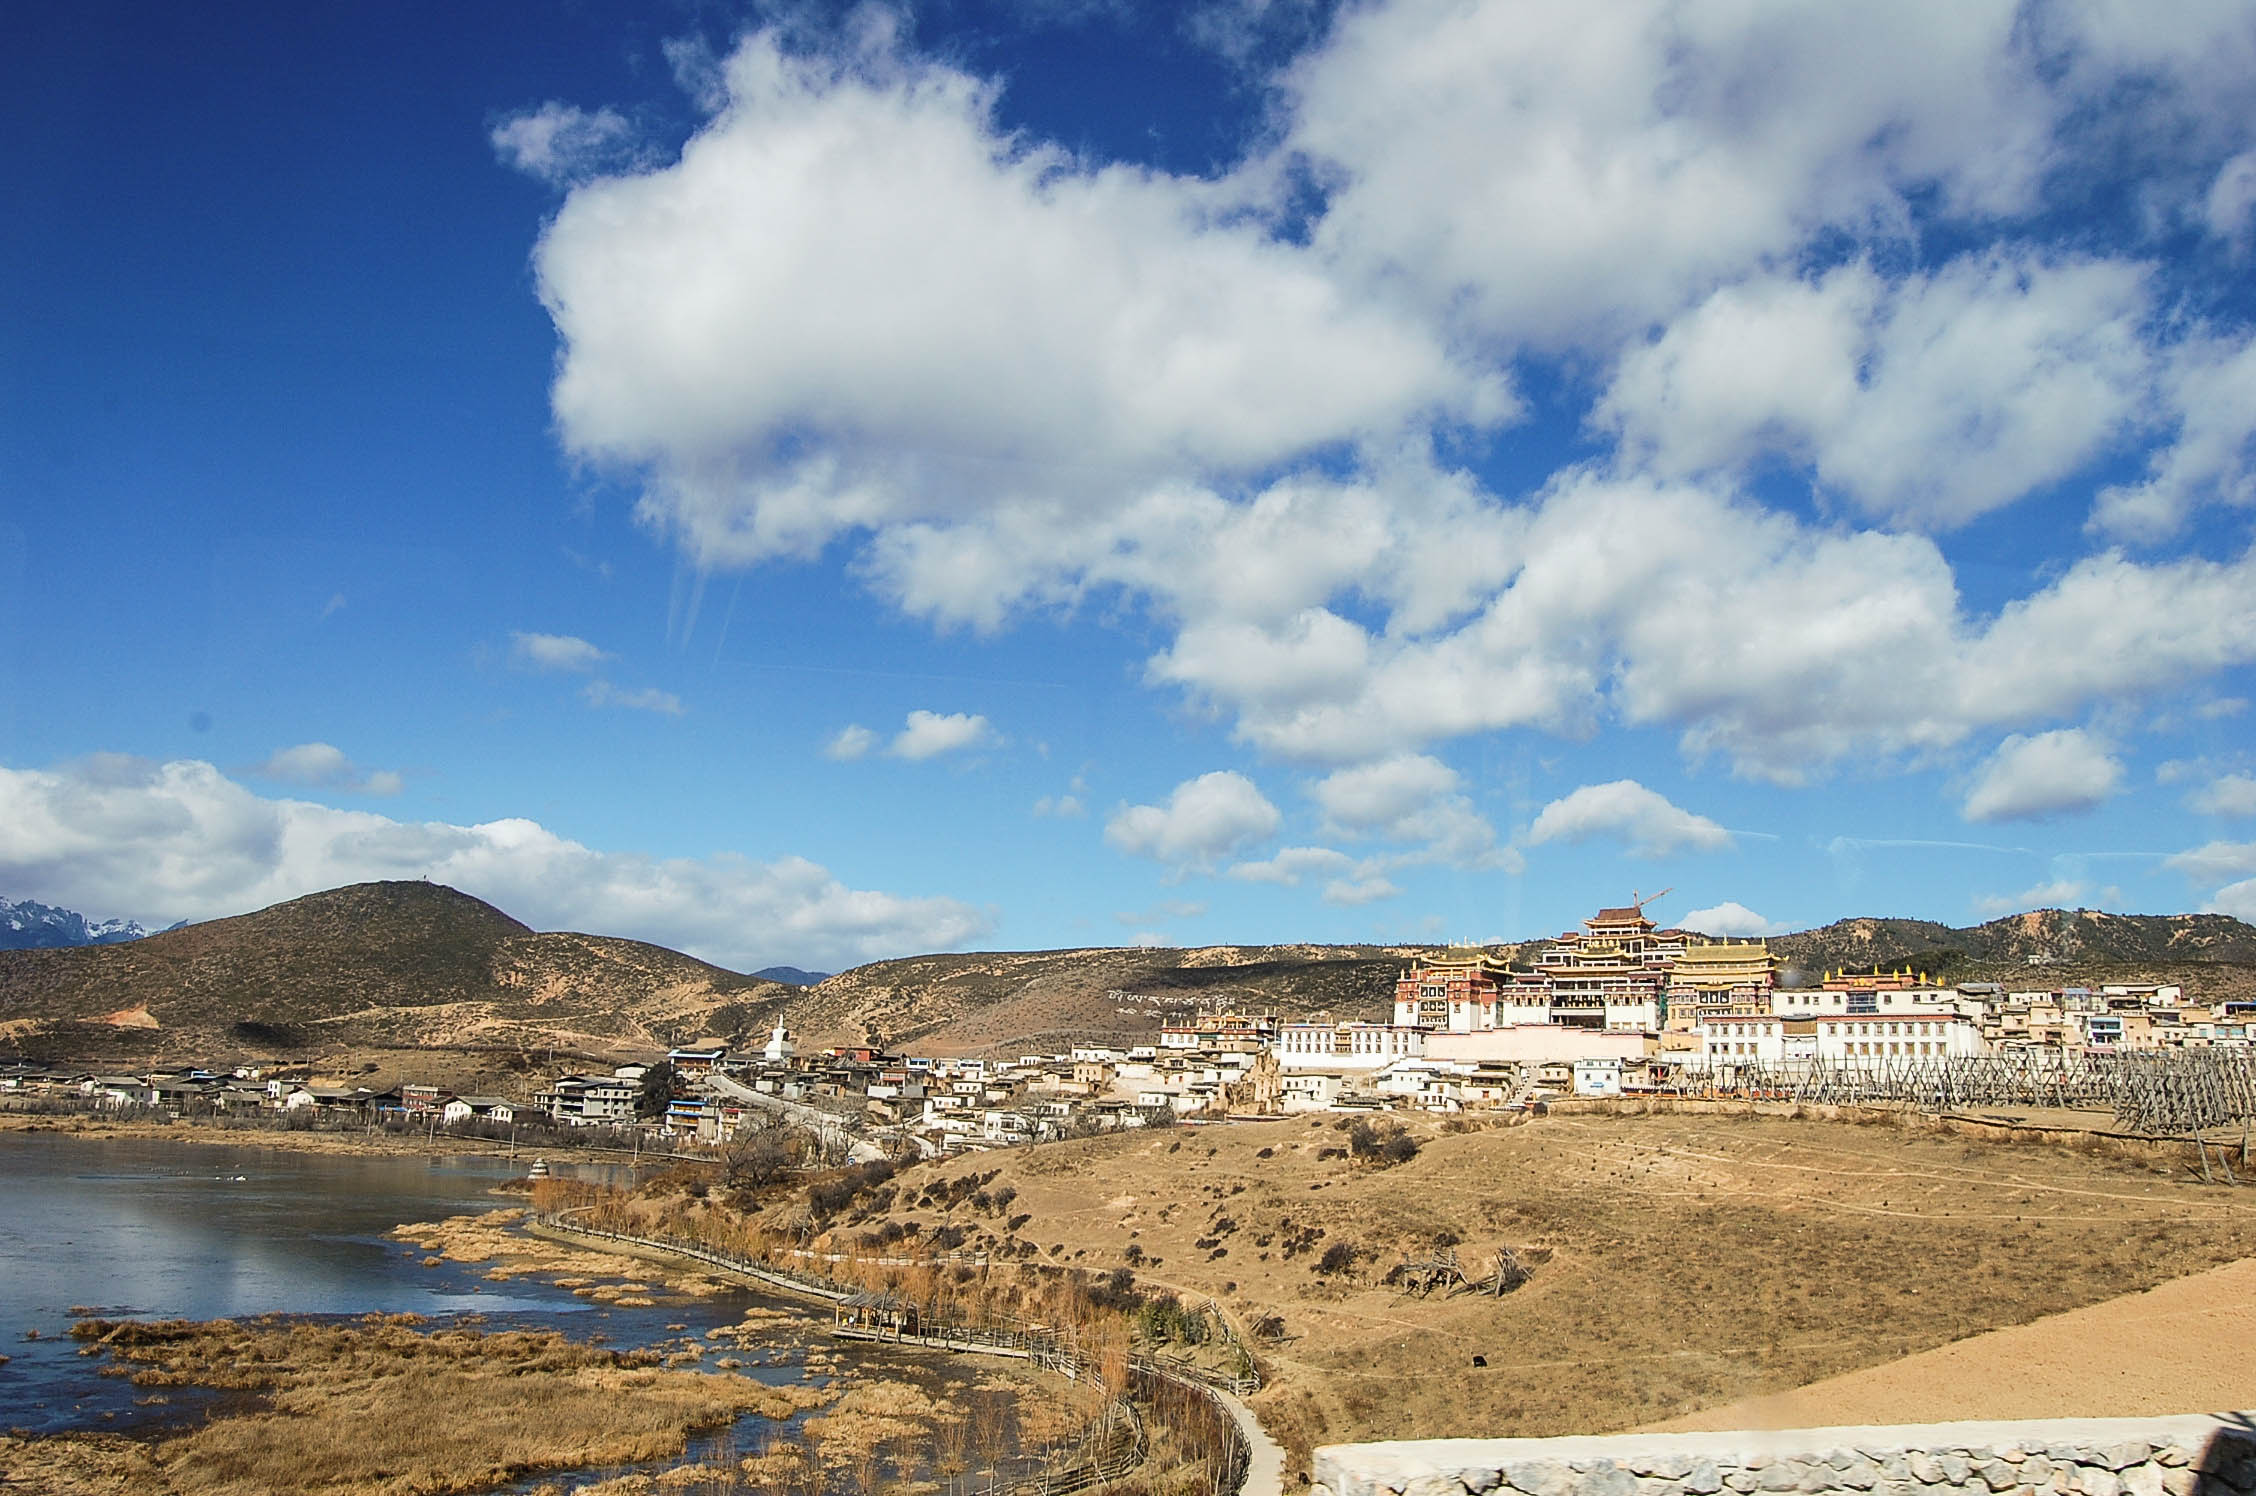 Shangri - la to Lhasa overland route